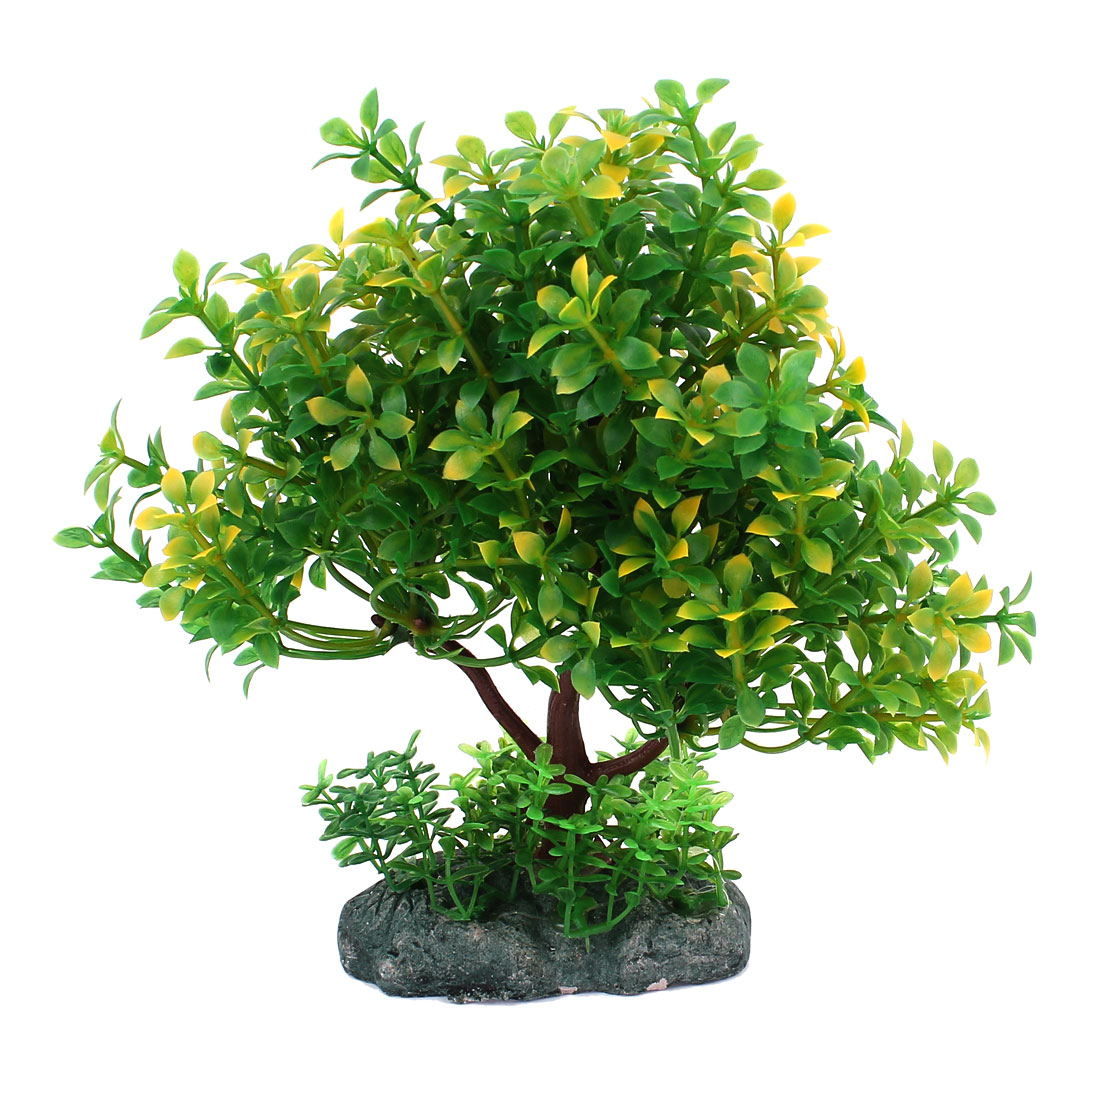 Aquarium Manmade Underwater Tree Plant Grass Ornament Green 18cm High